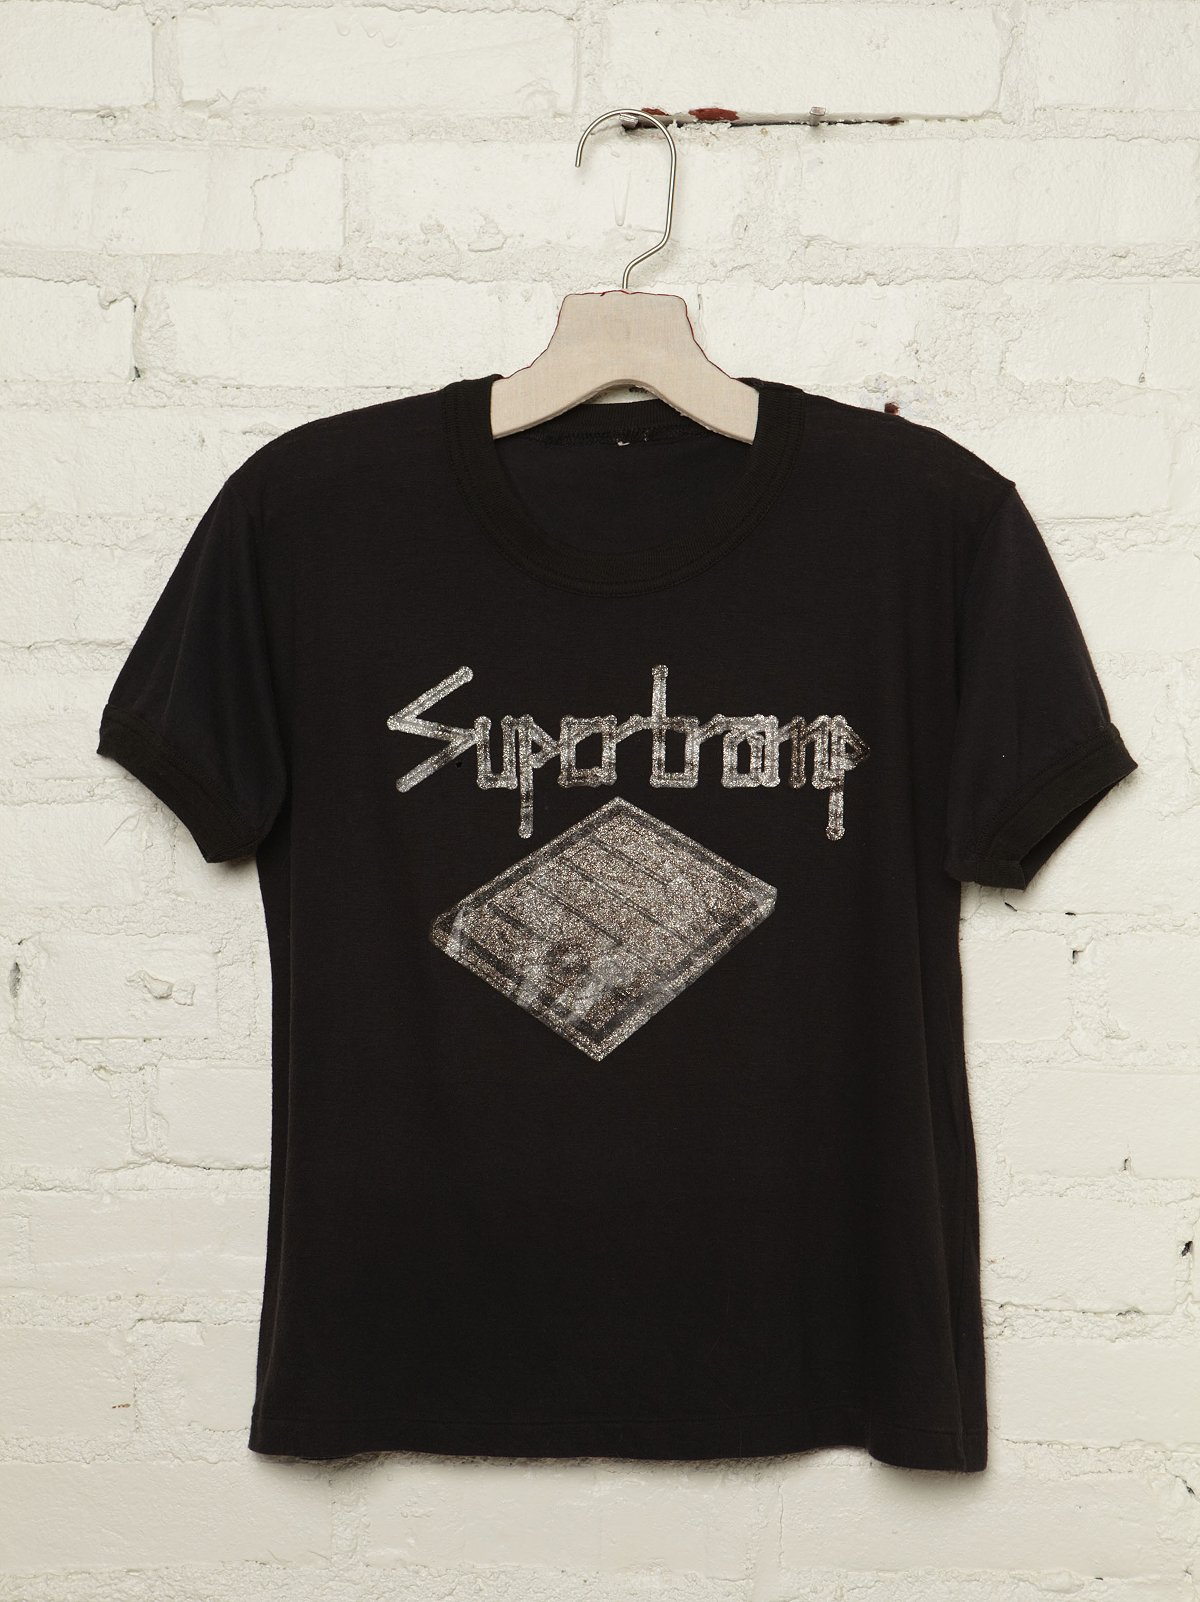 Vintage Supertramp Glitter Graphic Tee